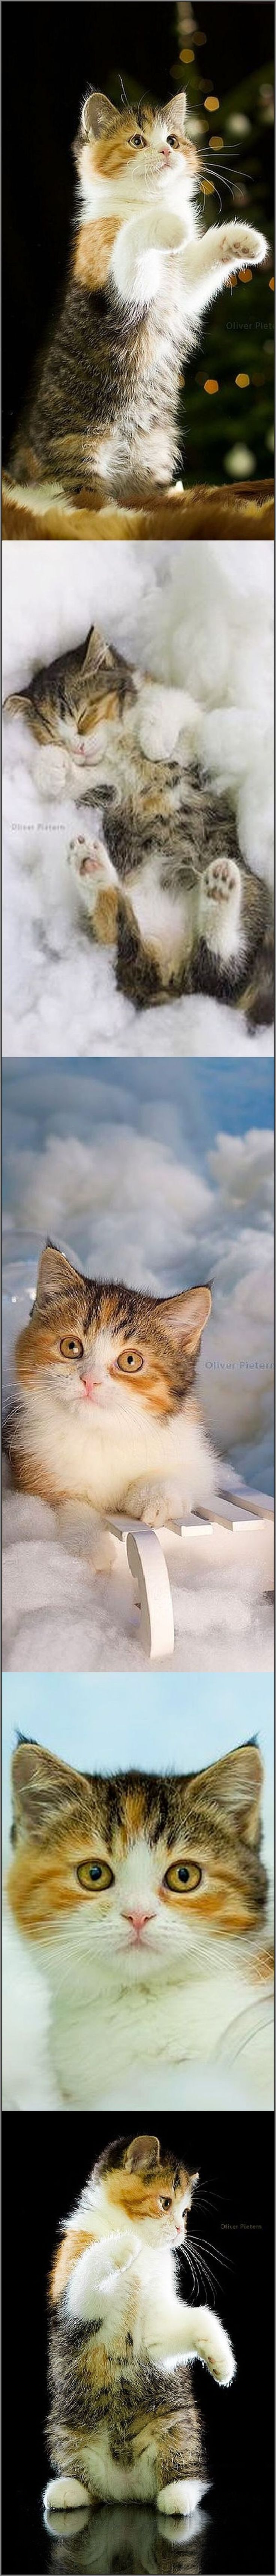 Chap - the fluffy photogenic kitty    #photos by hoschie ( Oliver Pietern ) on DeviantArt #cat cats animal pet kitten cute sweet beautiful nature http://snapmilfs.com/?id=amature_milf_casting